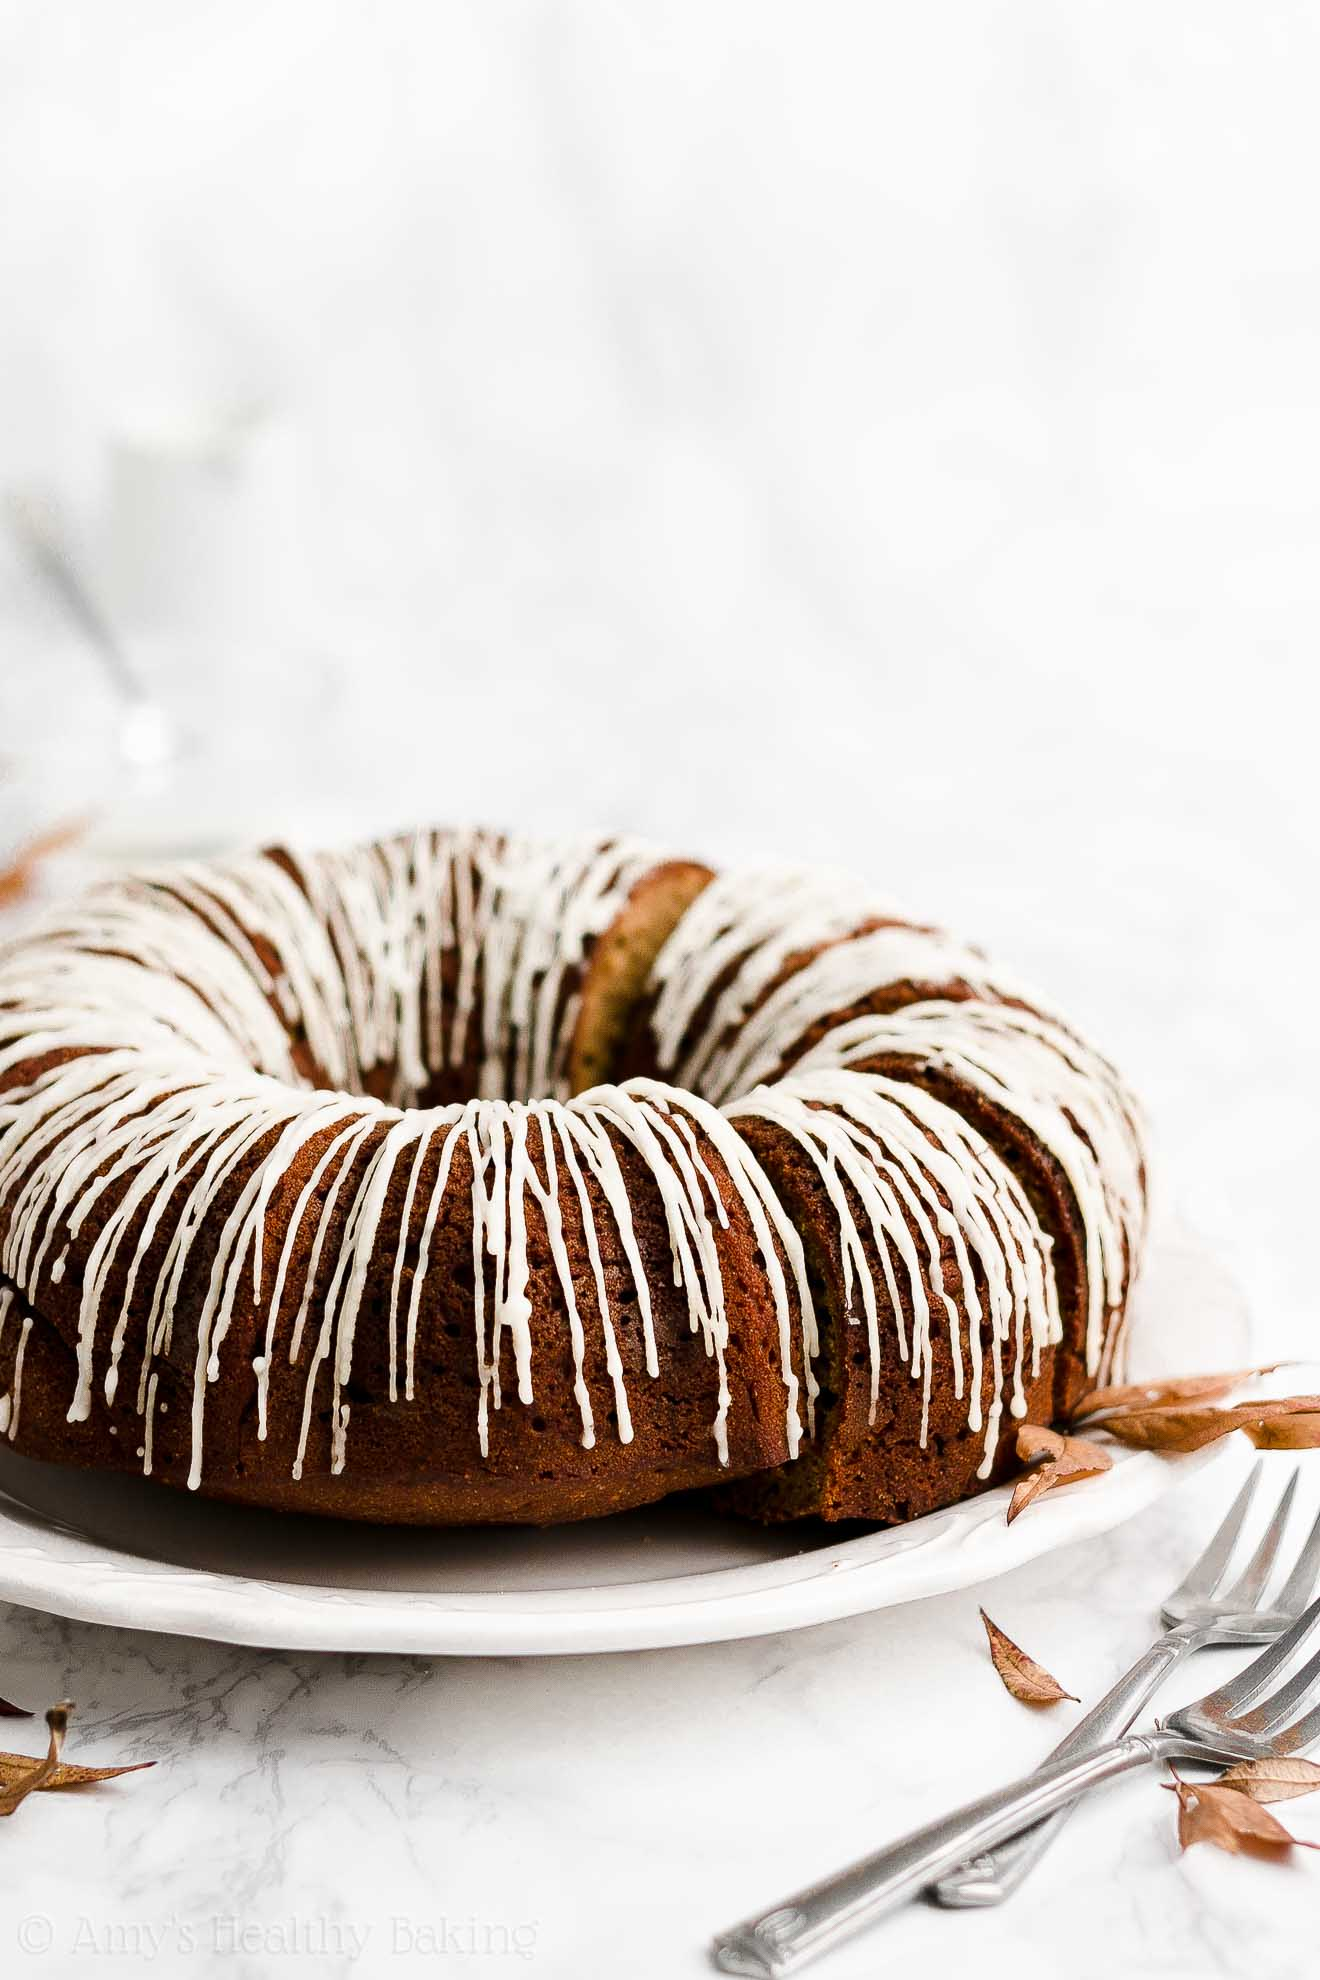 BEST EVER Easy Healthy Clean Eating Whole Wheat Gingerbread Bundt Cake